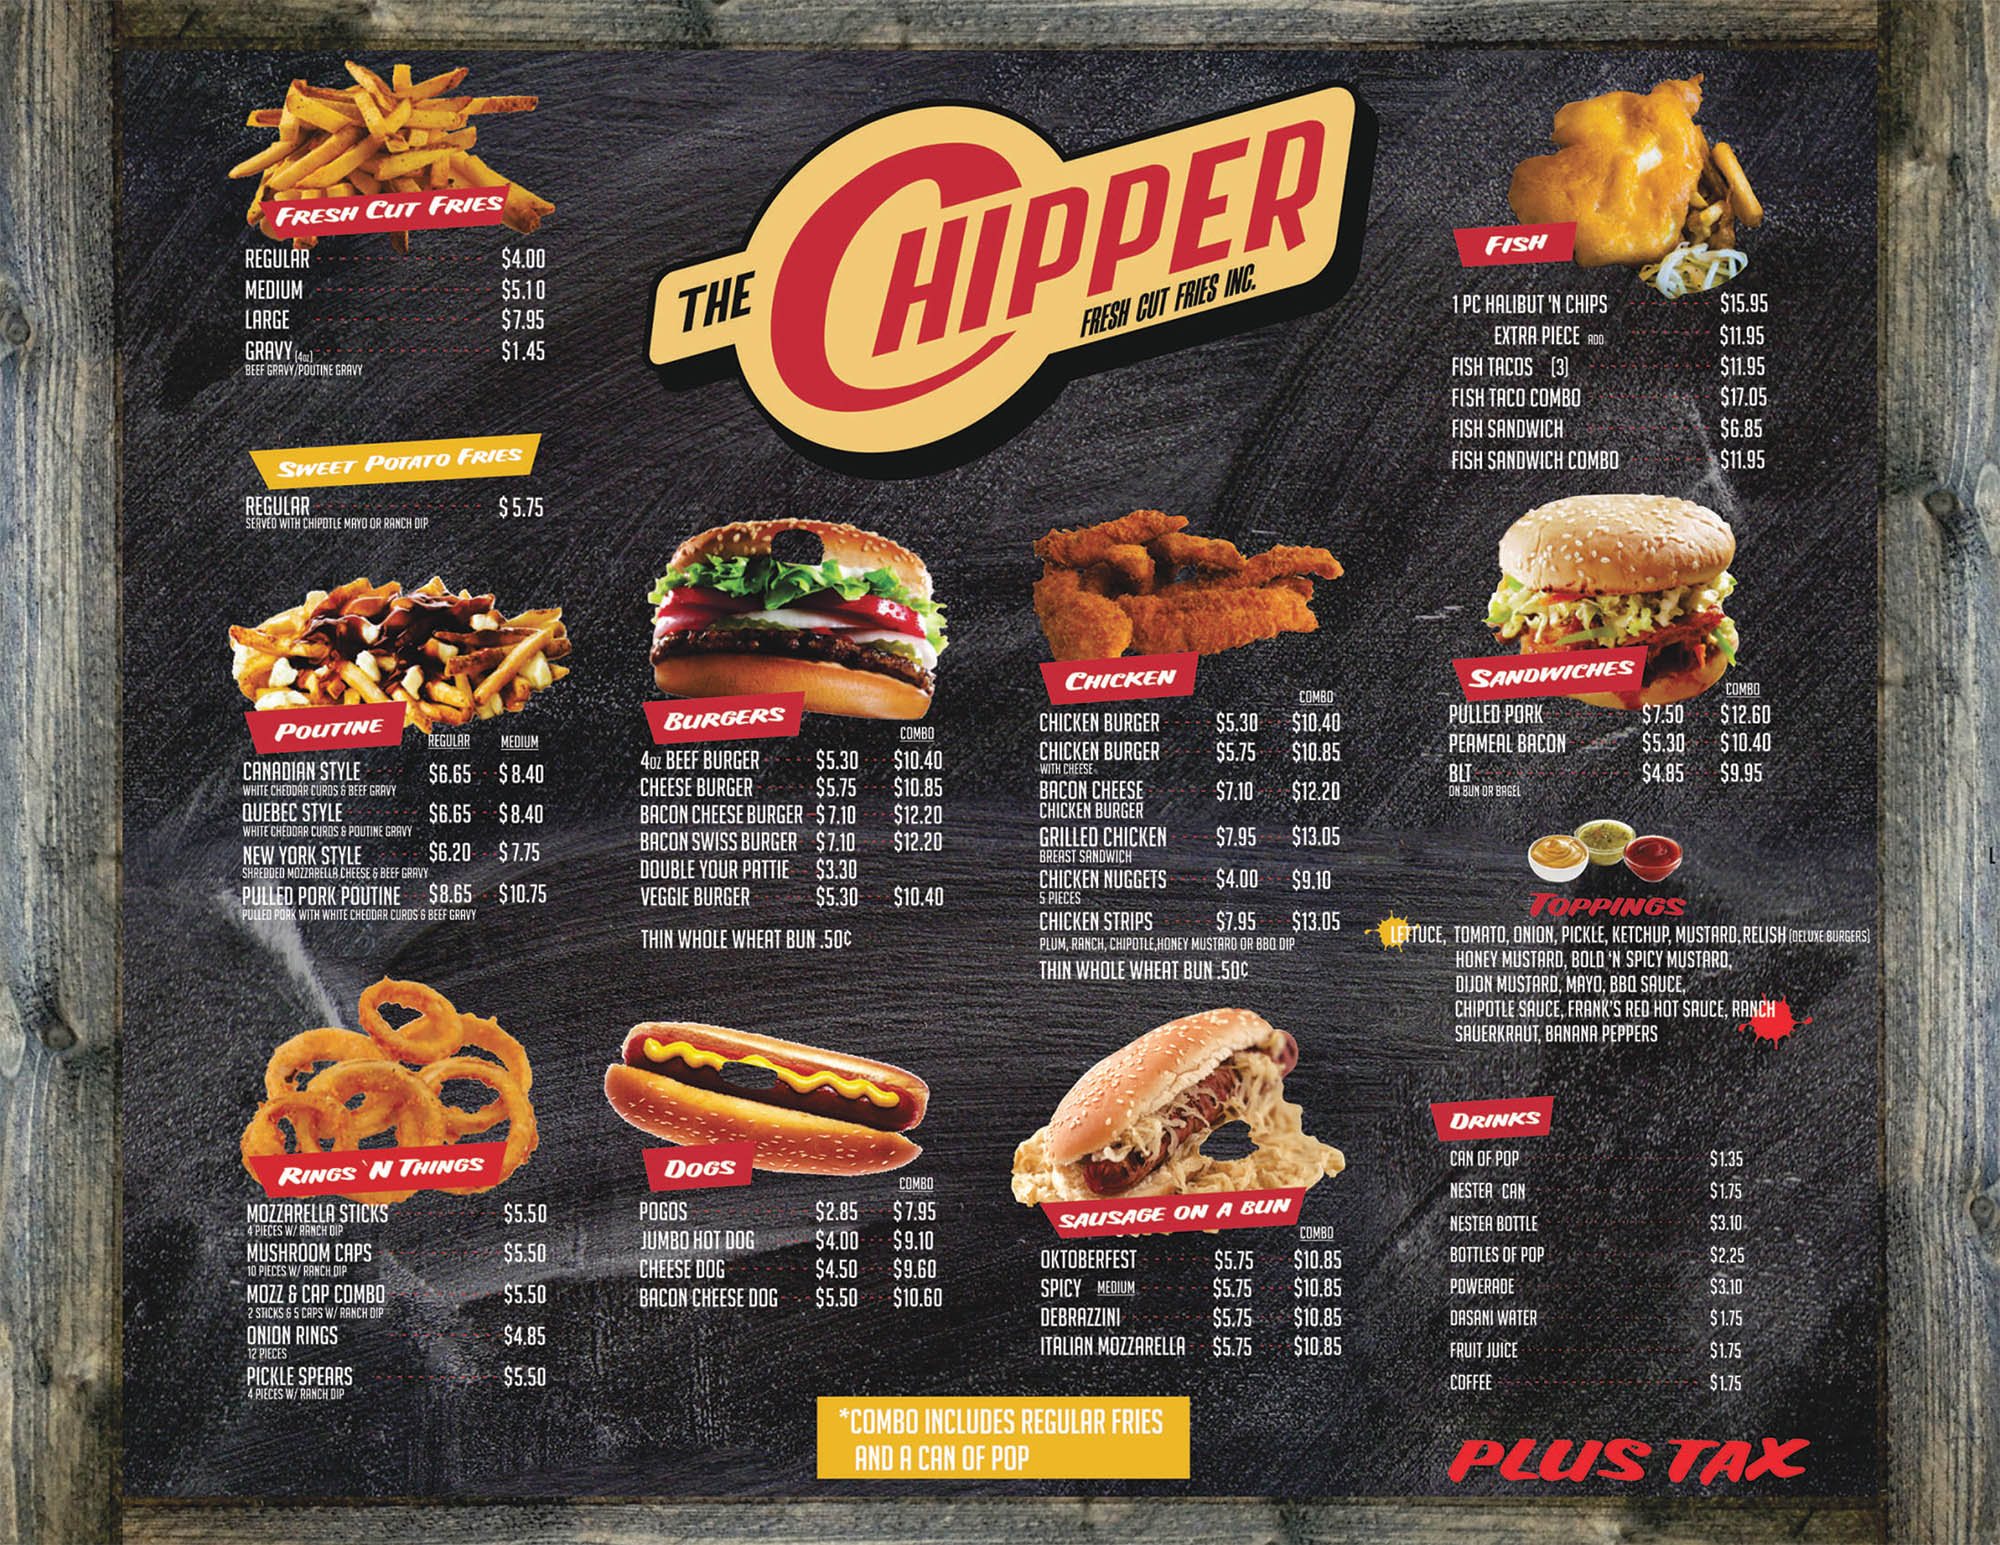 The Chipper Menu Fries and Entrees